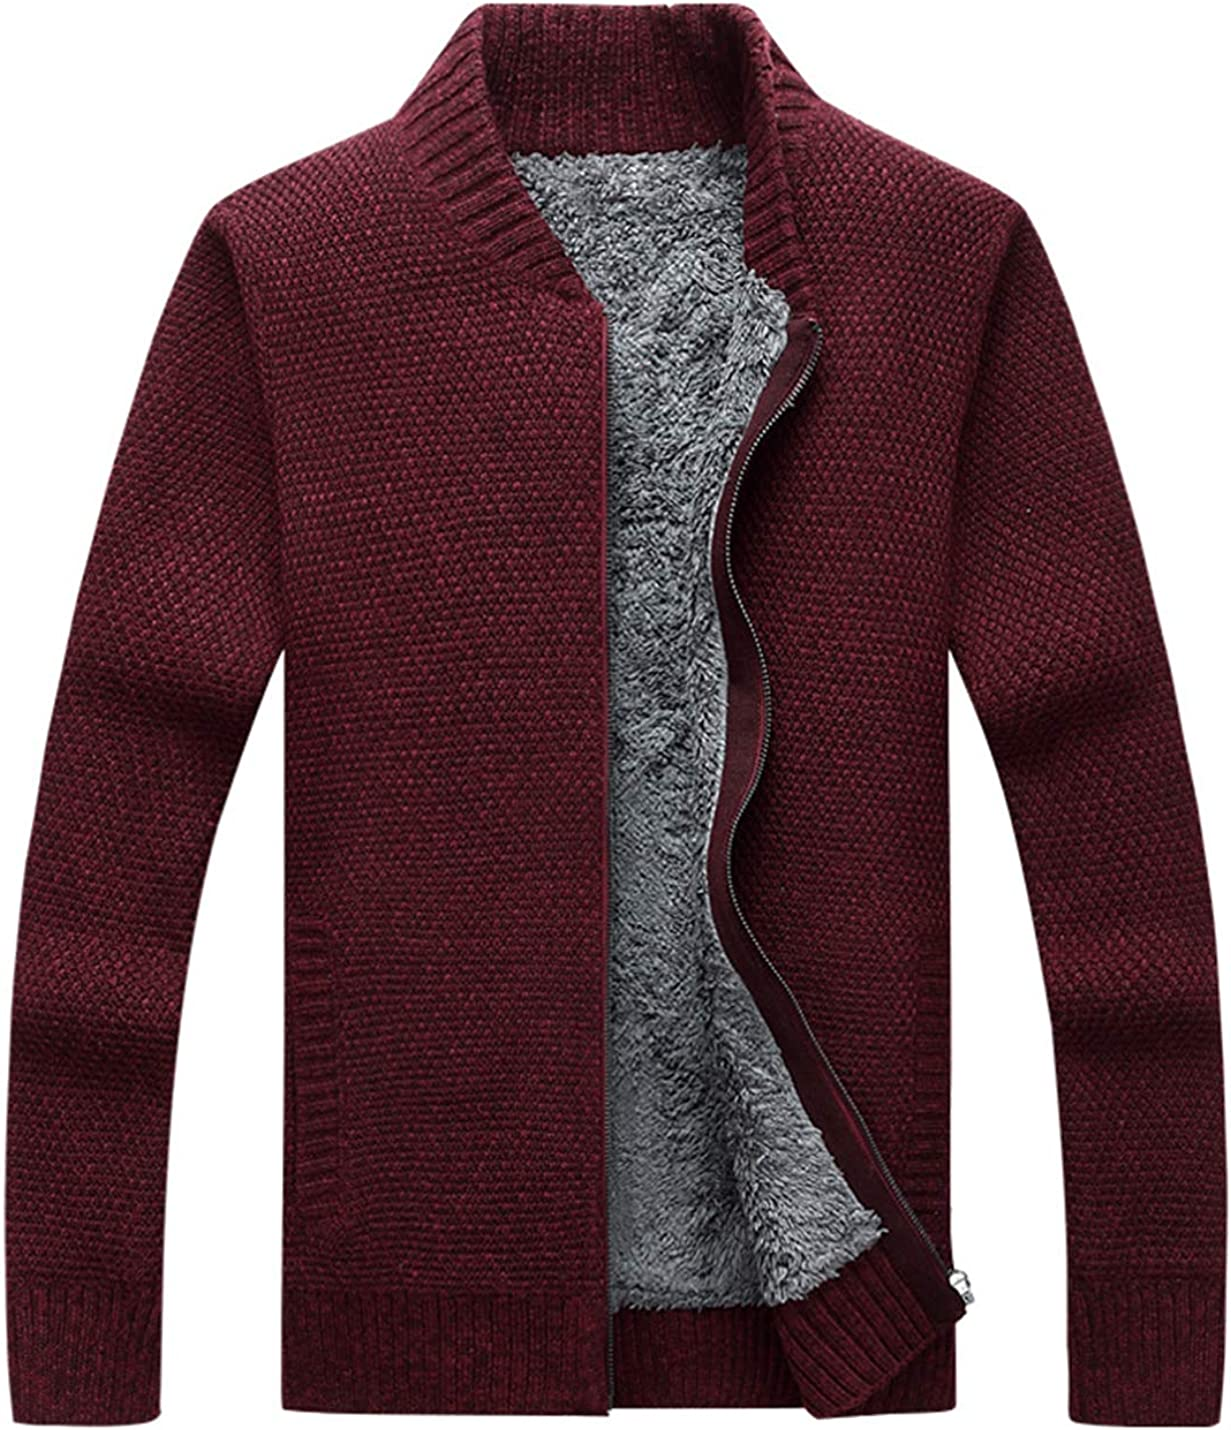 Yeokou Mens Casual Stand Collar Zip Up Knitted Cardigan Sweaters with Pockets